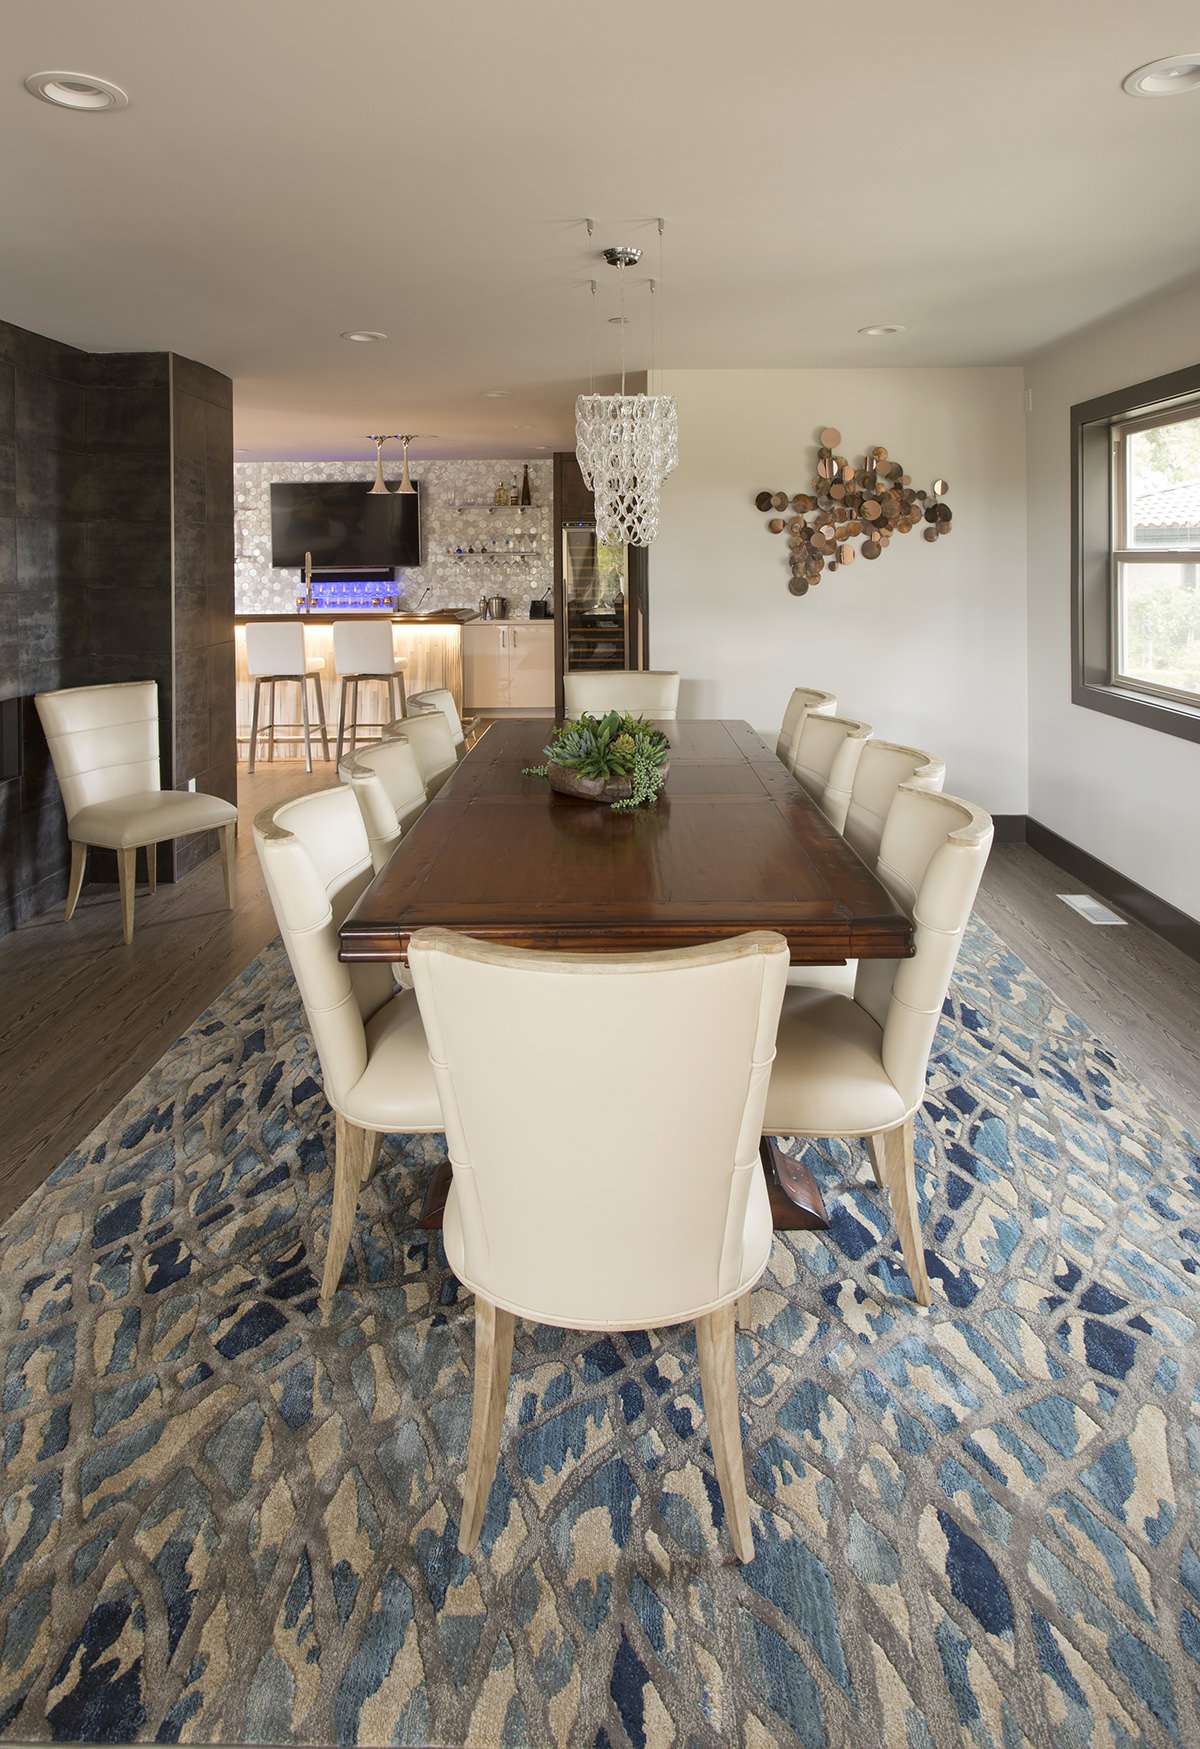 dining-room-decor-interior-design-los-altos-california-ktj-design-co-1.jpg